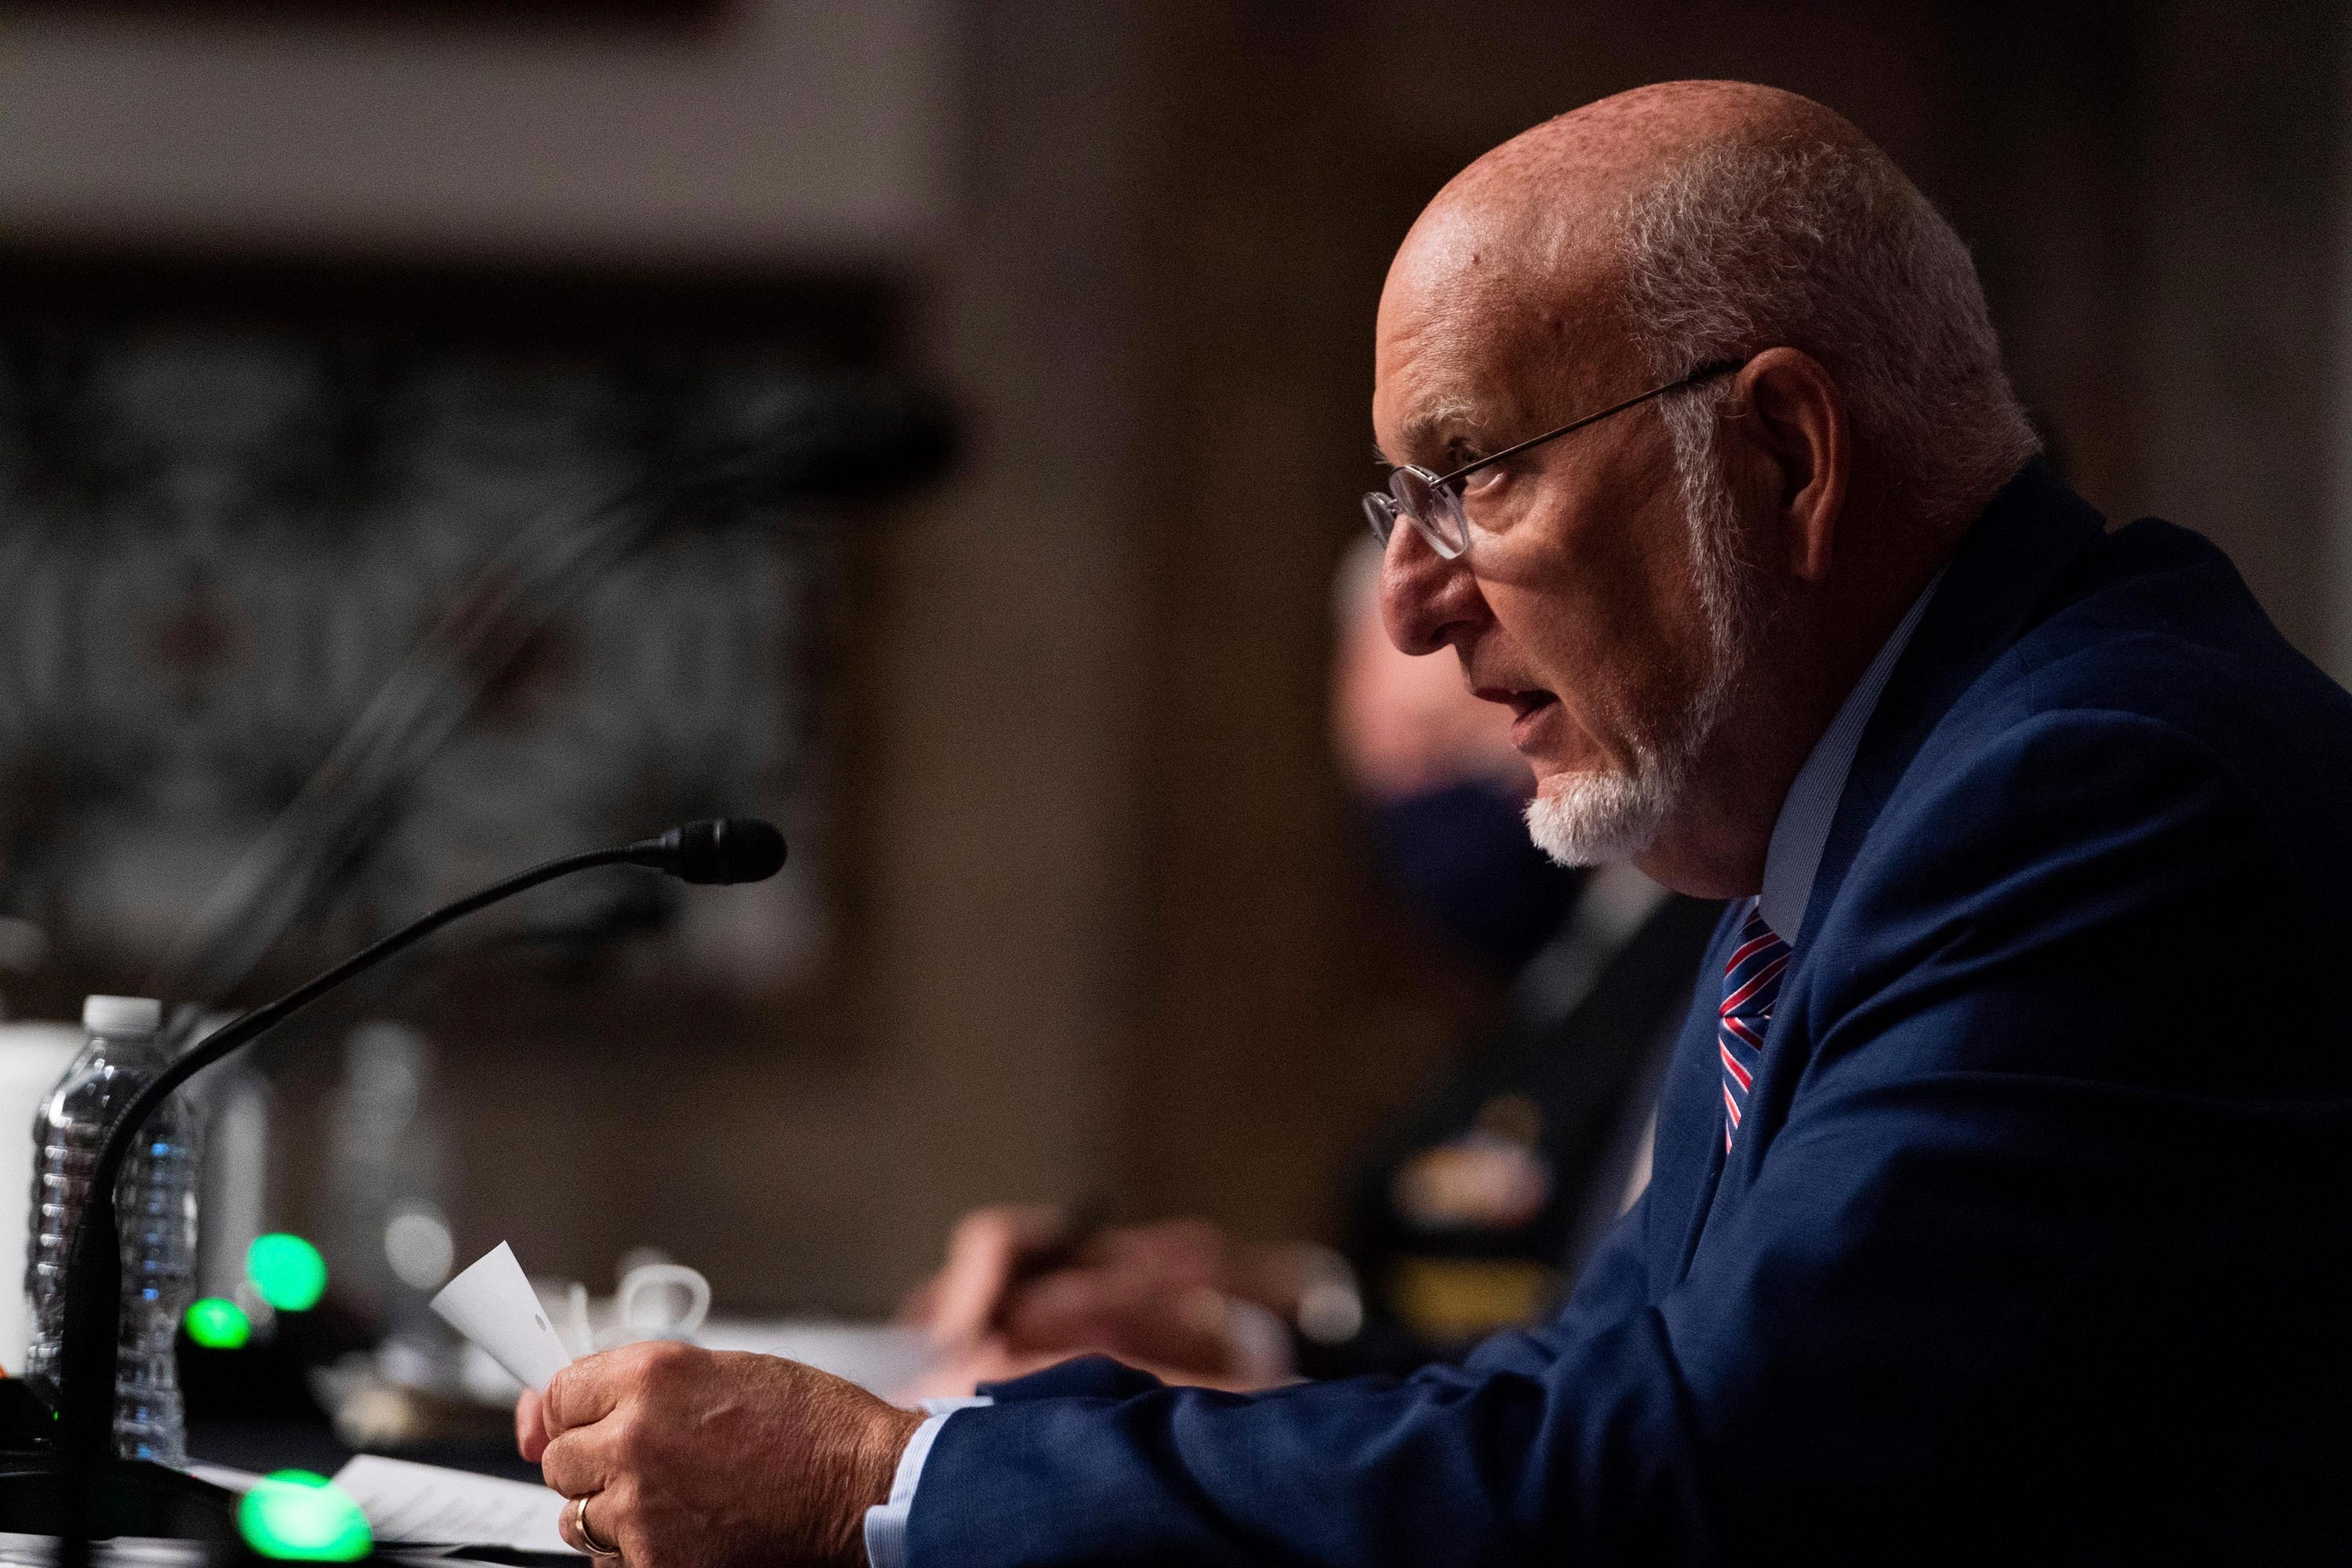 Dr. Robert Redfield, director of the Centers for Disease Control and Prevention, testifies at a hearing with the Senate Appropriations Subcommittee on September 16 in Washington, DC.